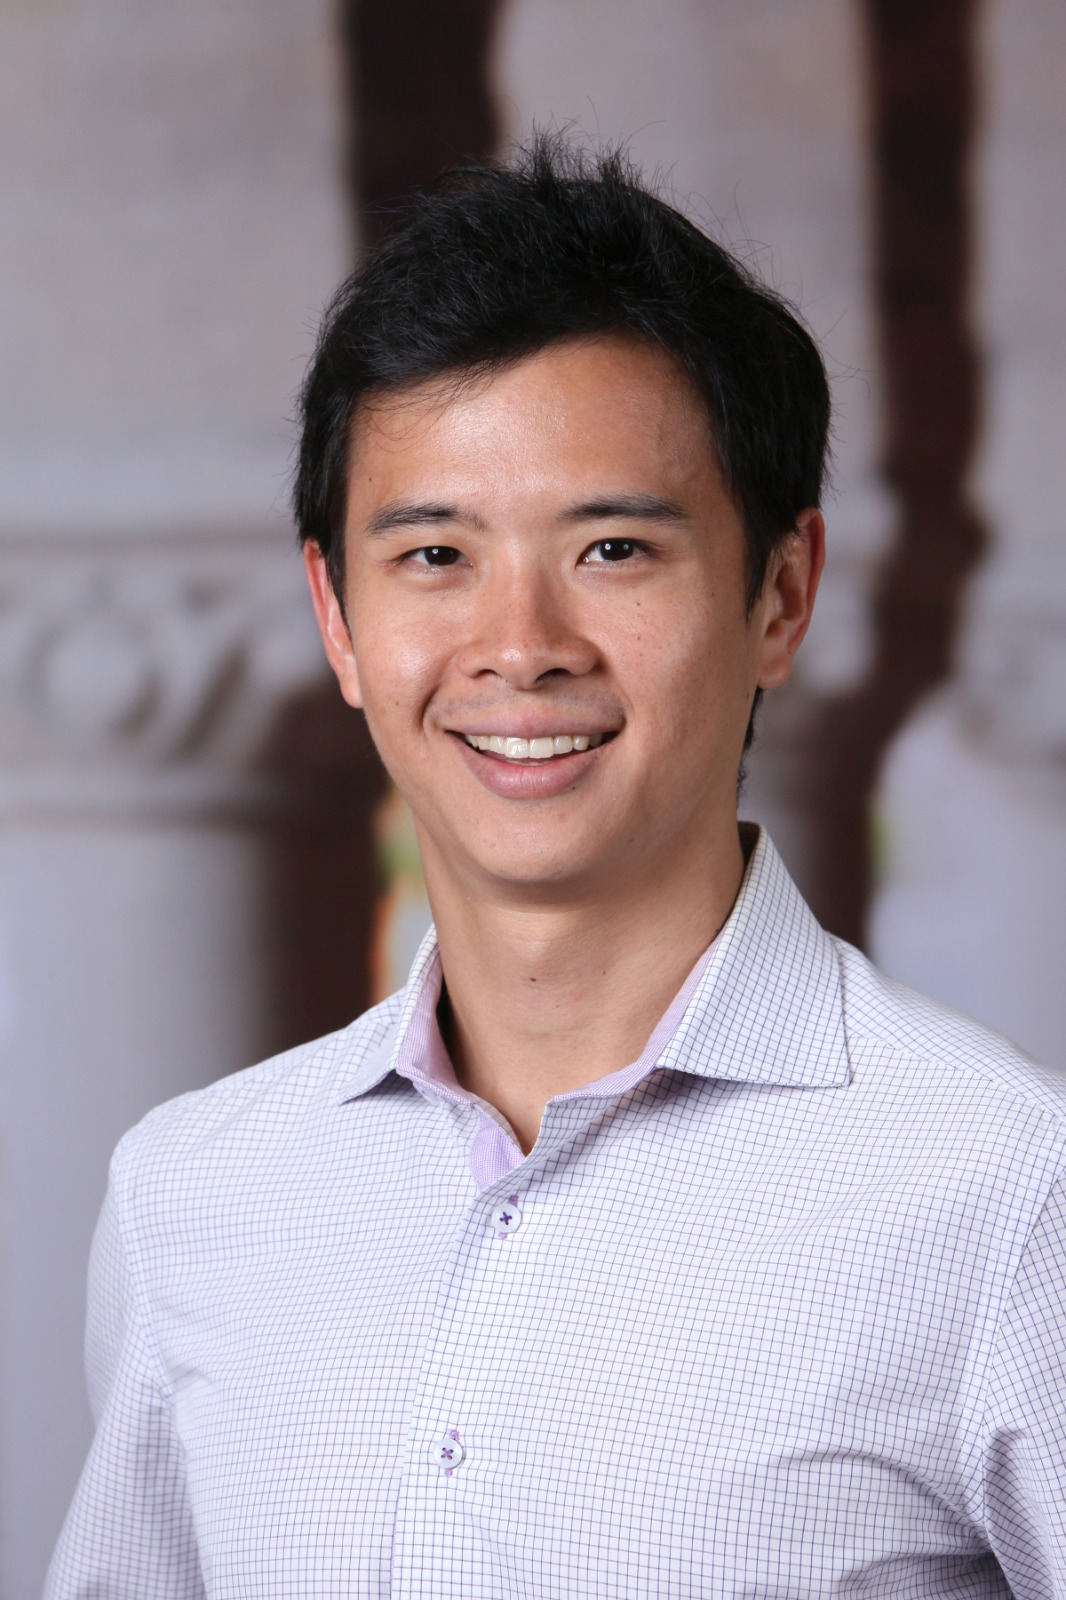 WhatsApp Image 2019-11-01 at 11.55.30.jpeg